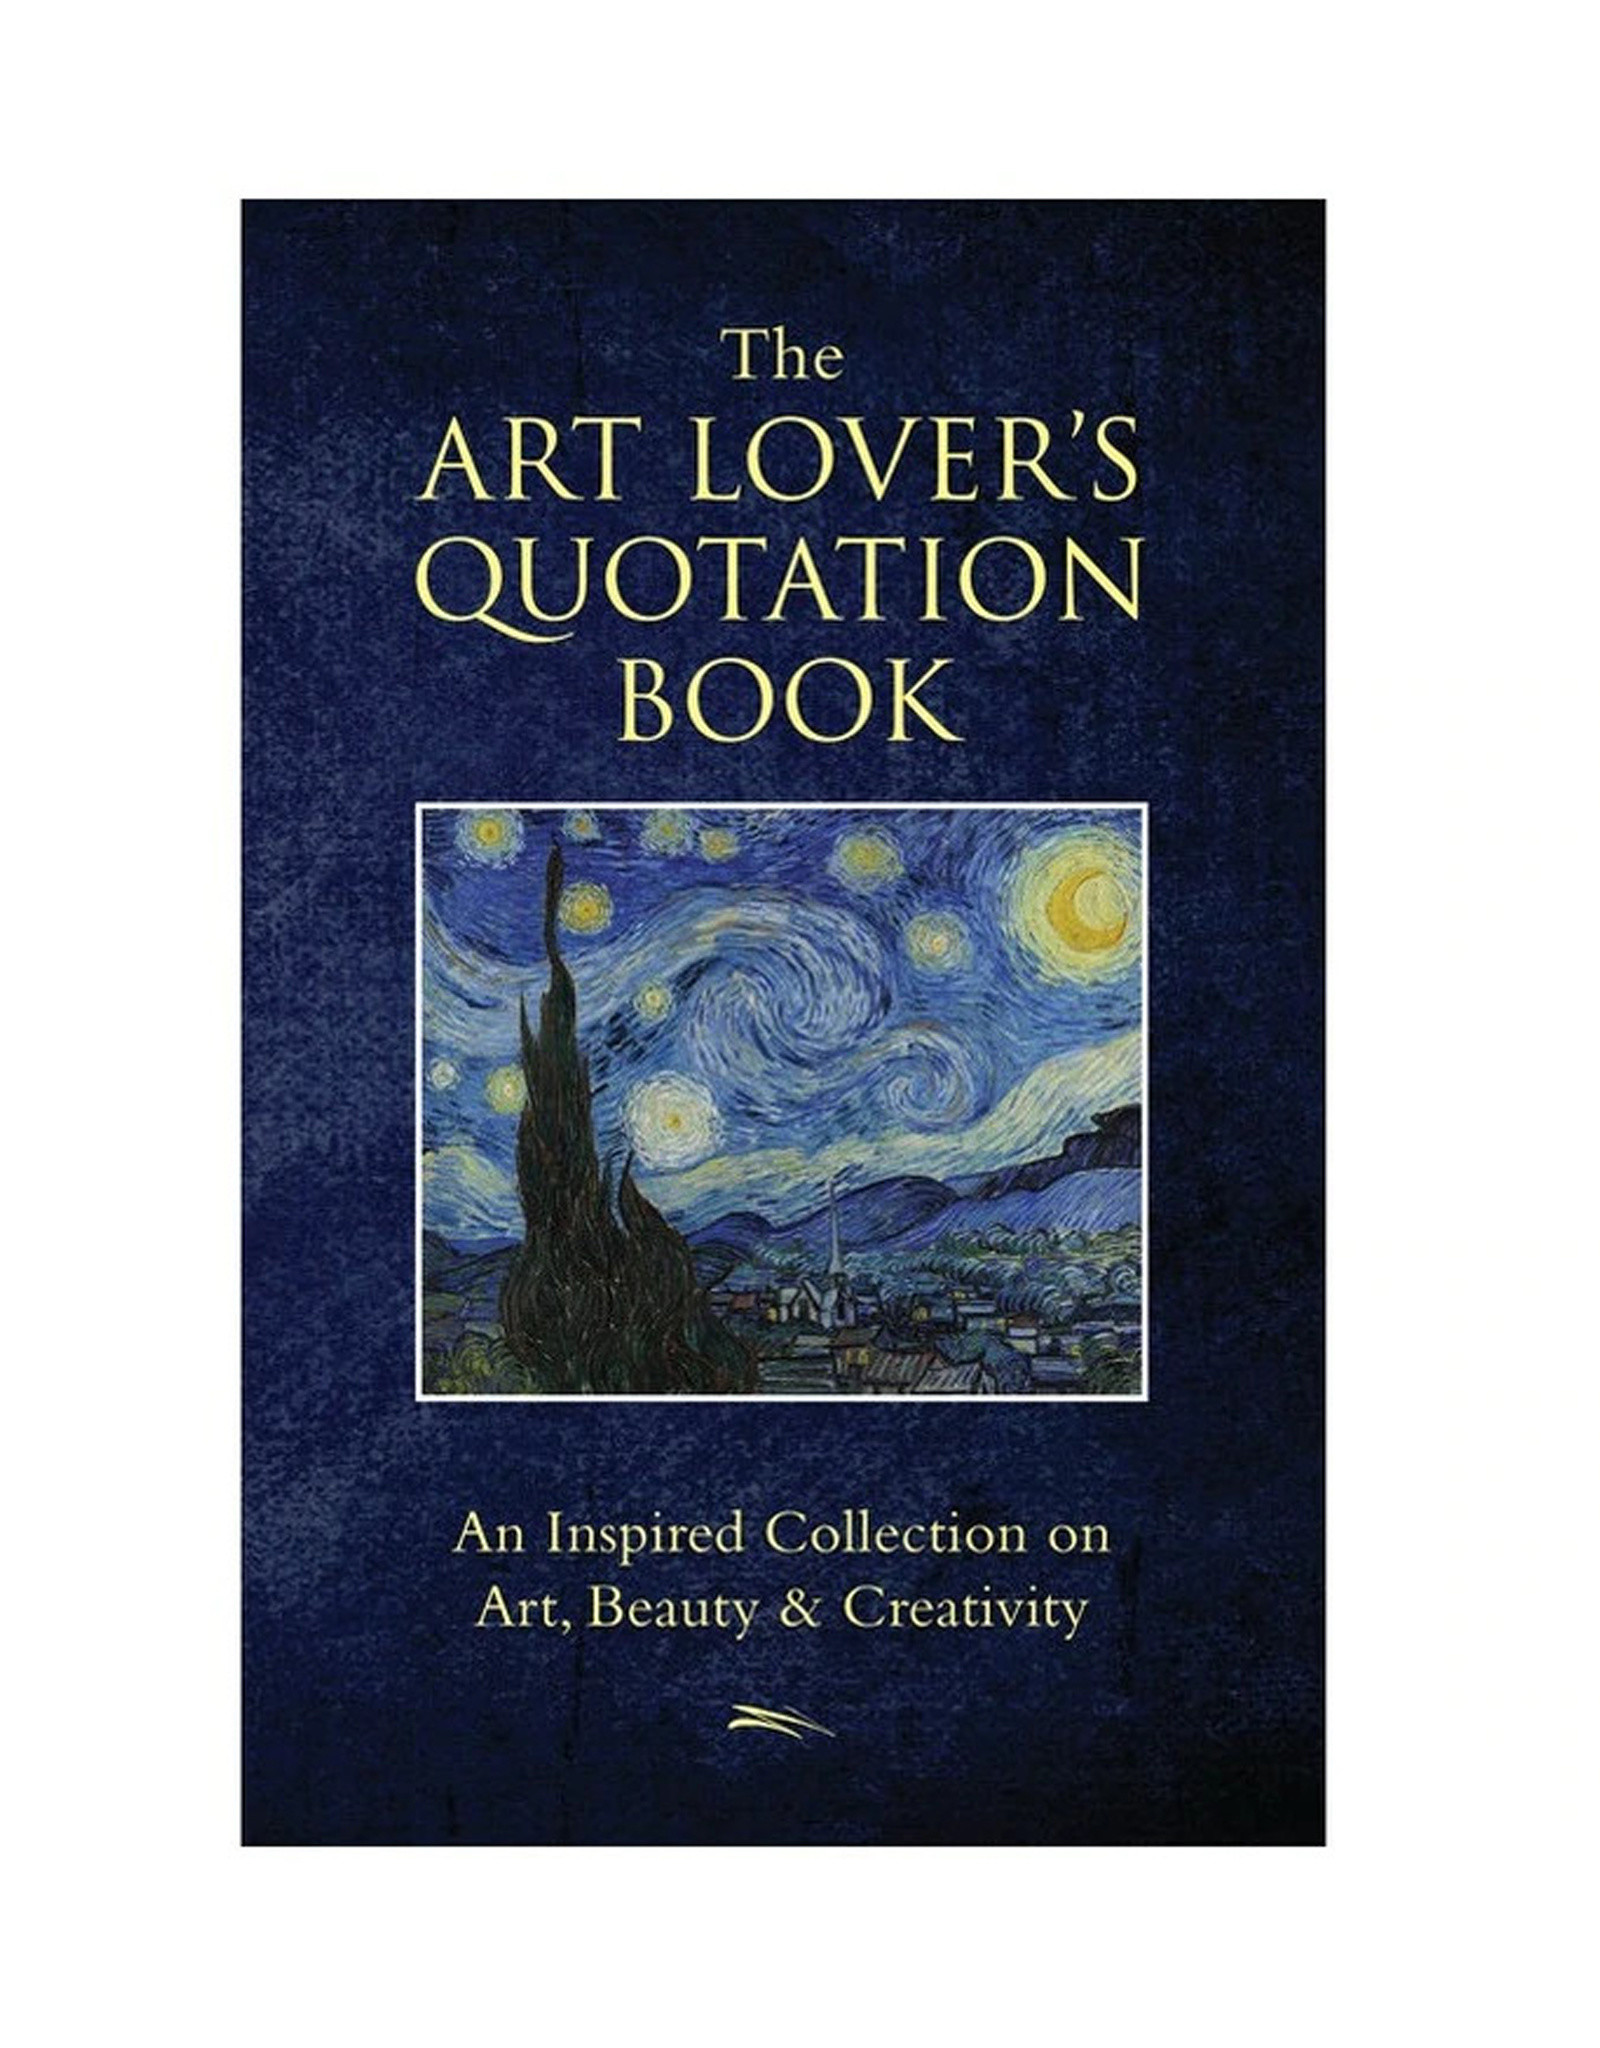 Art Lover's Quotation Book